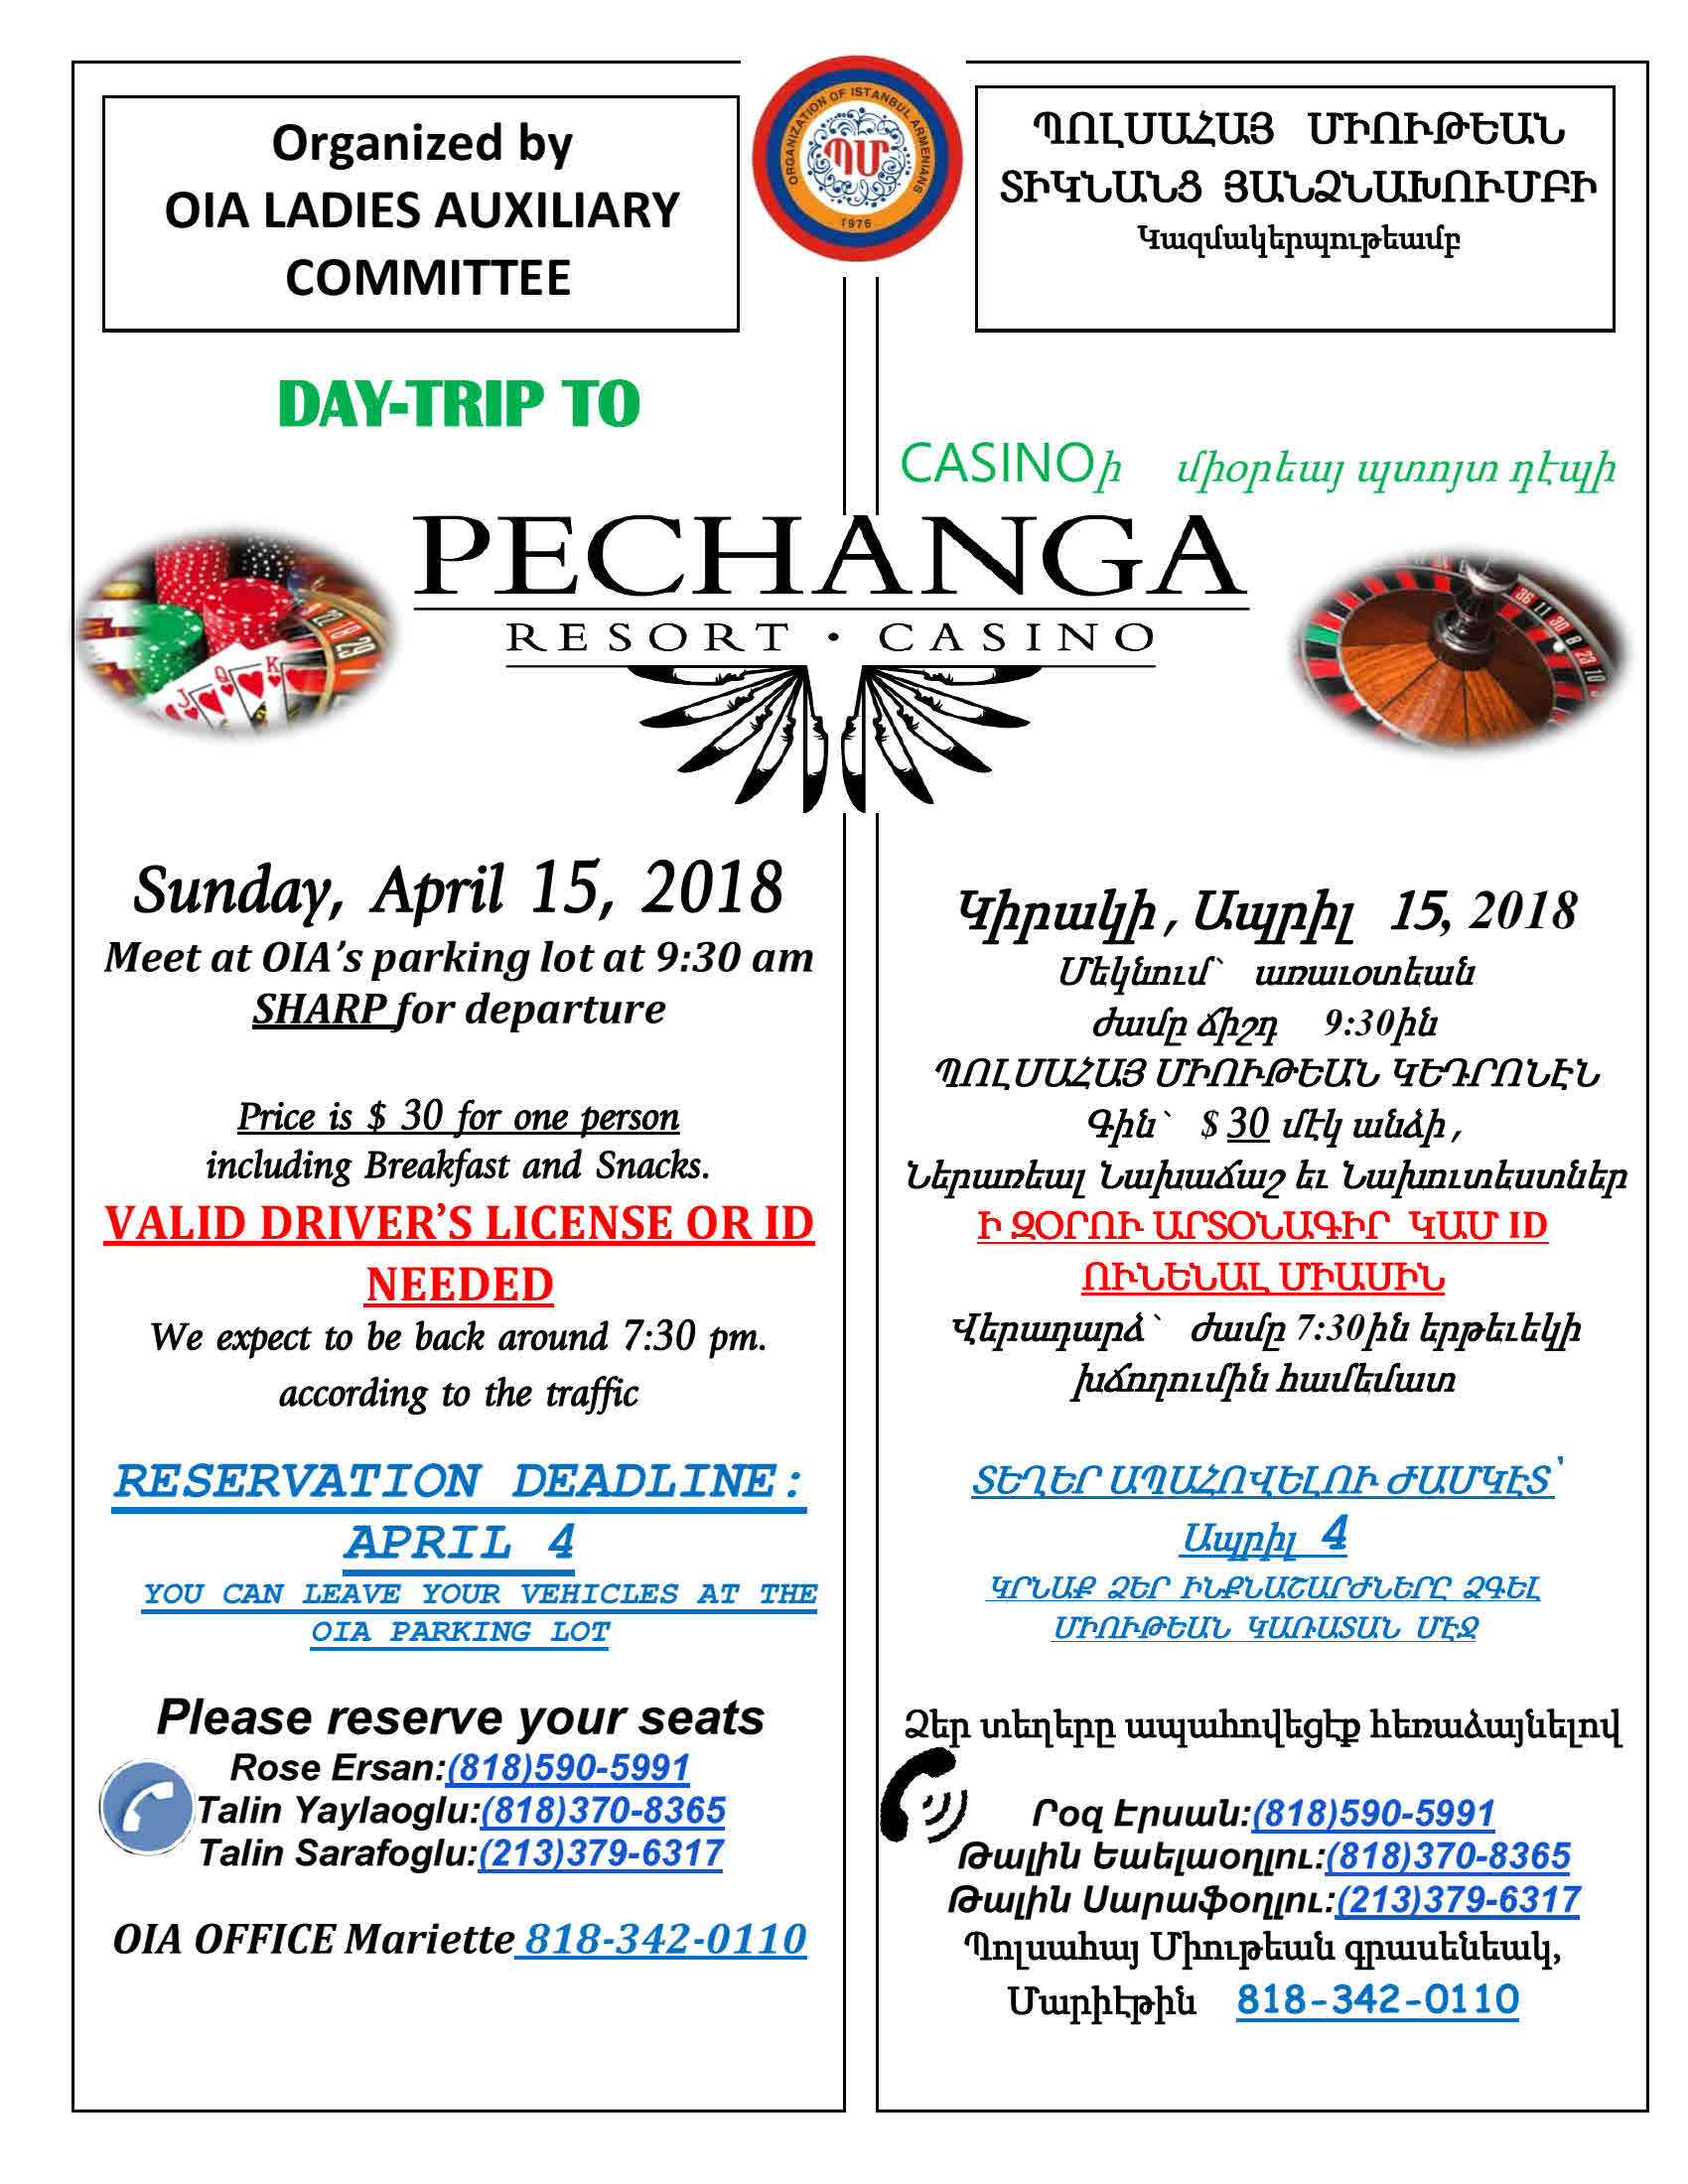 casino flyer pechanga